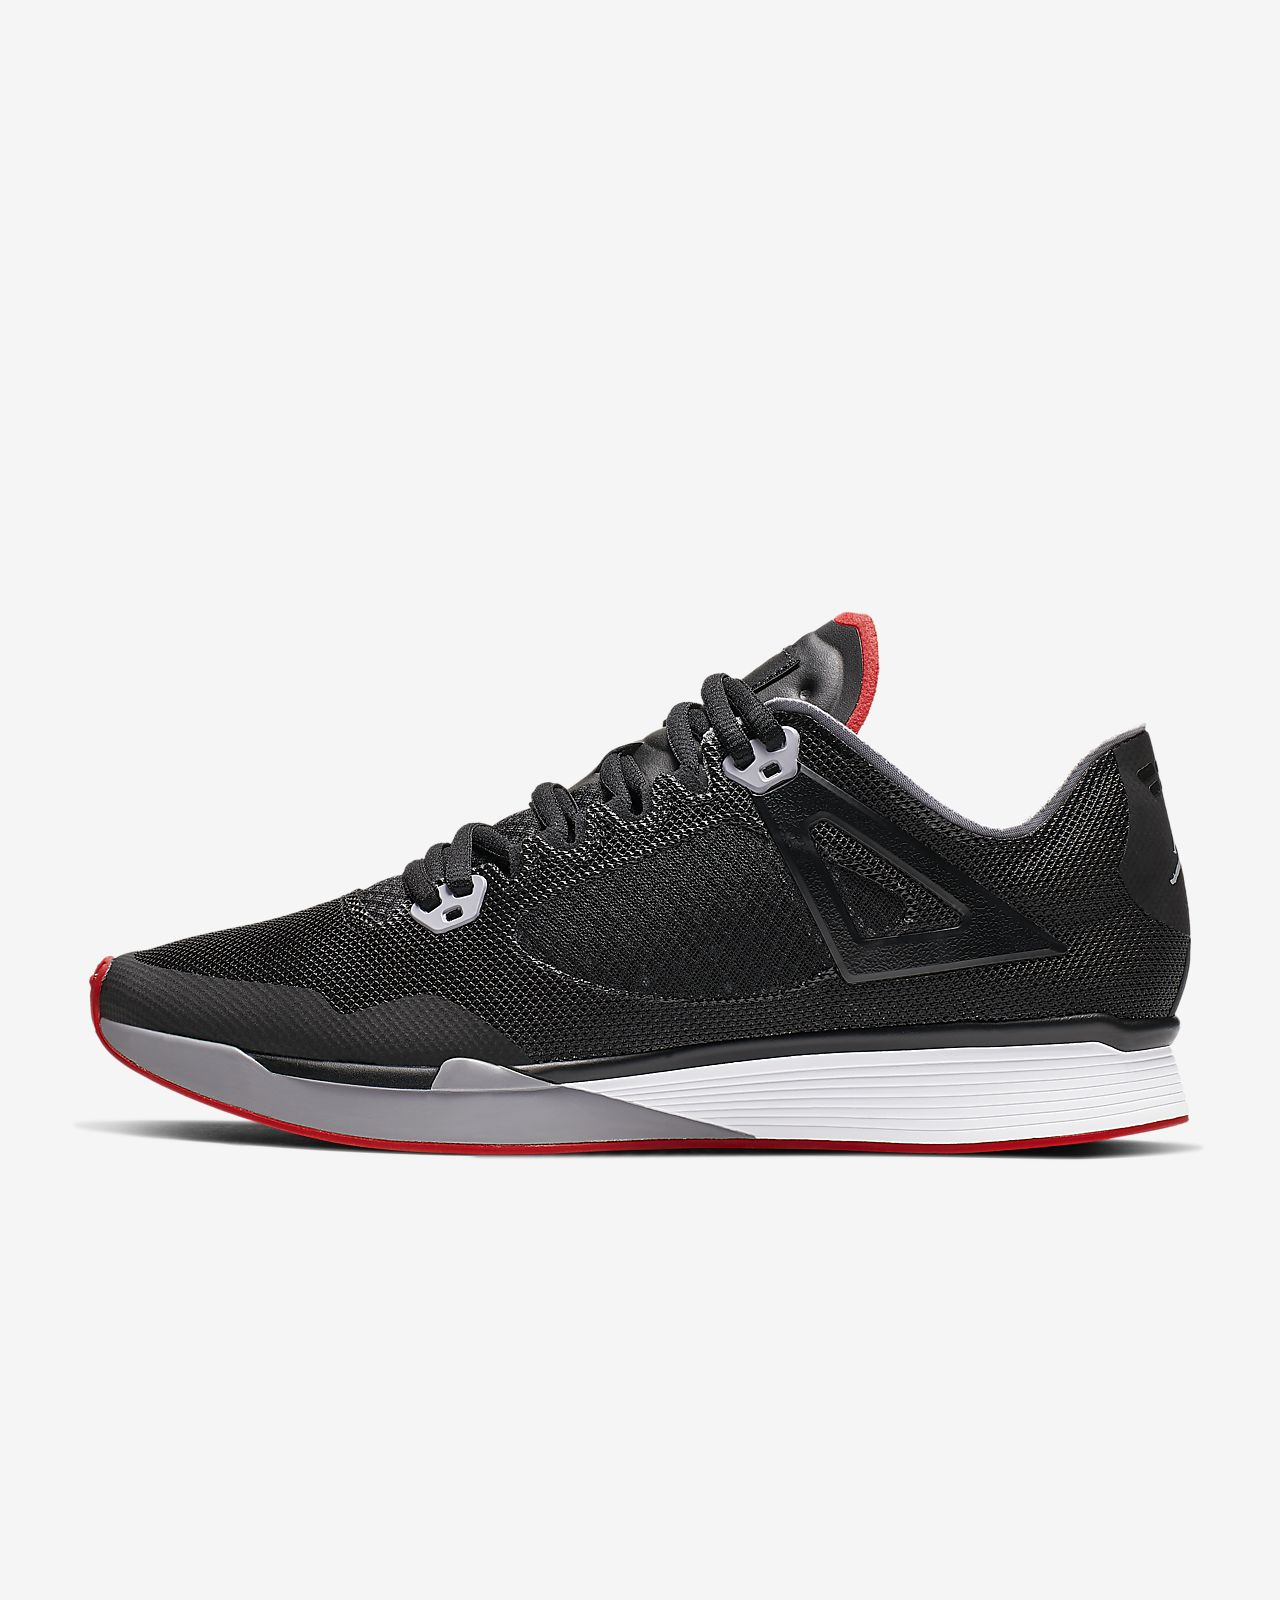 23a2de83c2b Low Resolution Jordan 89 Racer Men's Training Shoe Jordan 89 Racer Men's  Training Shoe